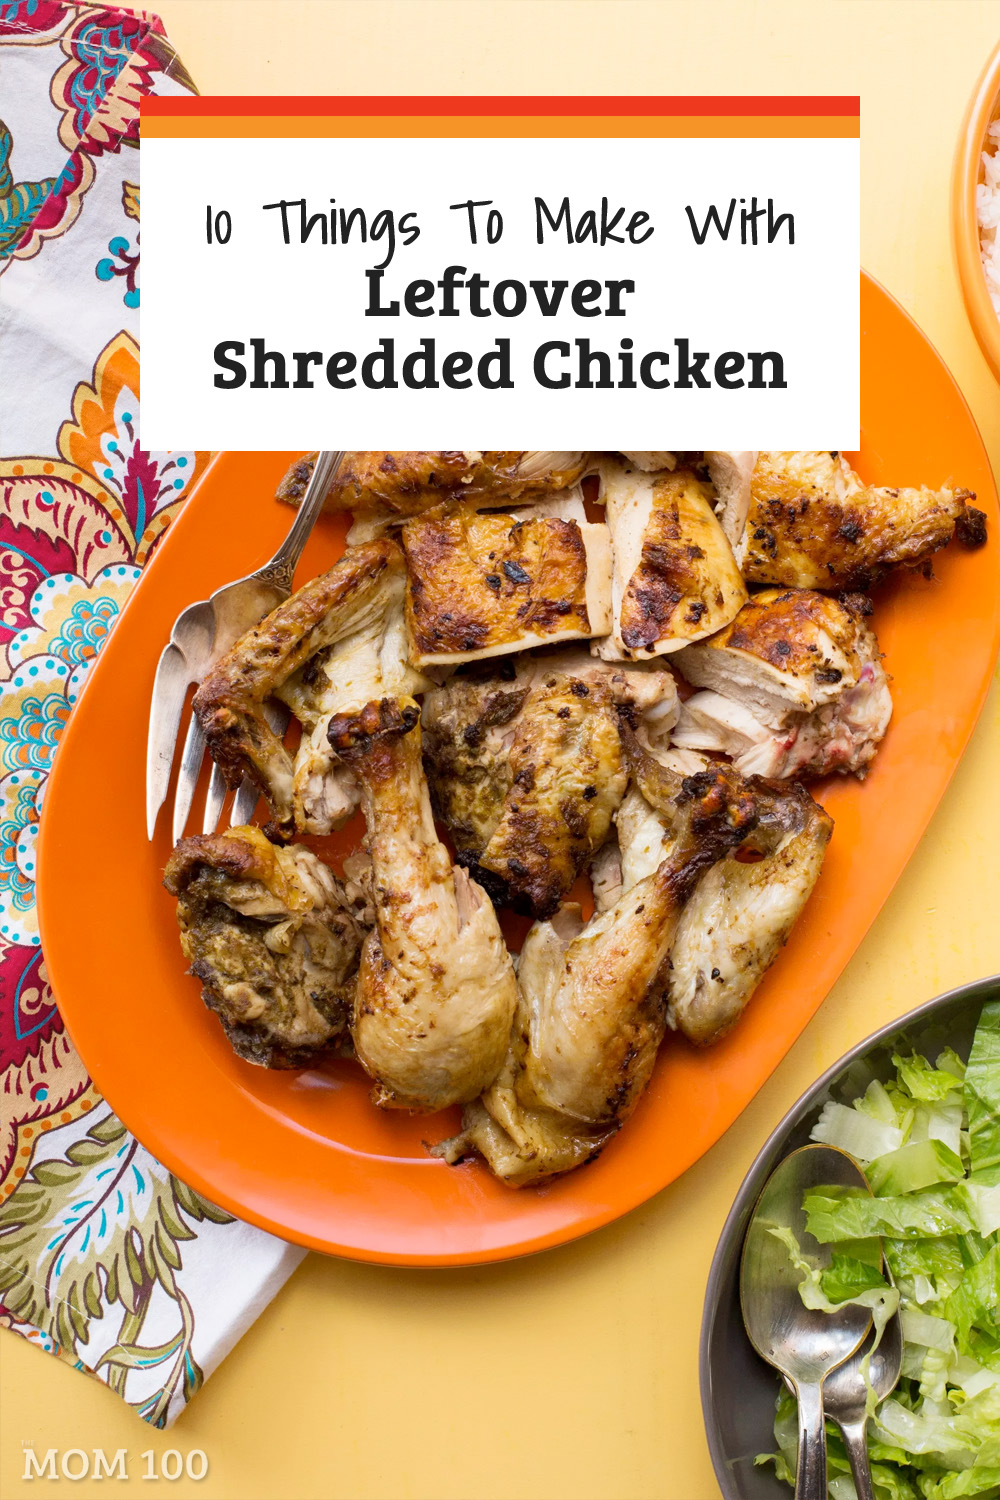 10 Things To Make With Leftover Shredded Chicken \u2014 The Mom 100